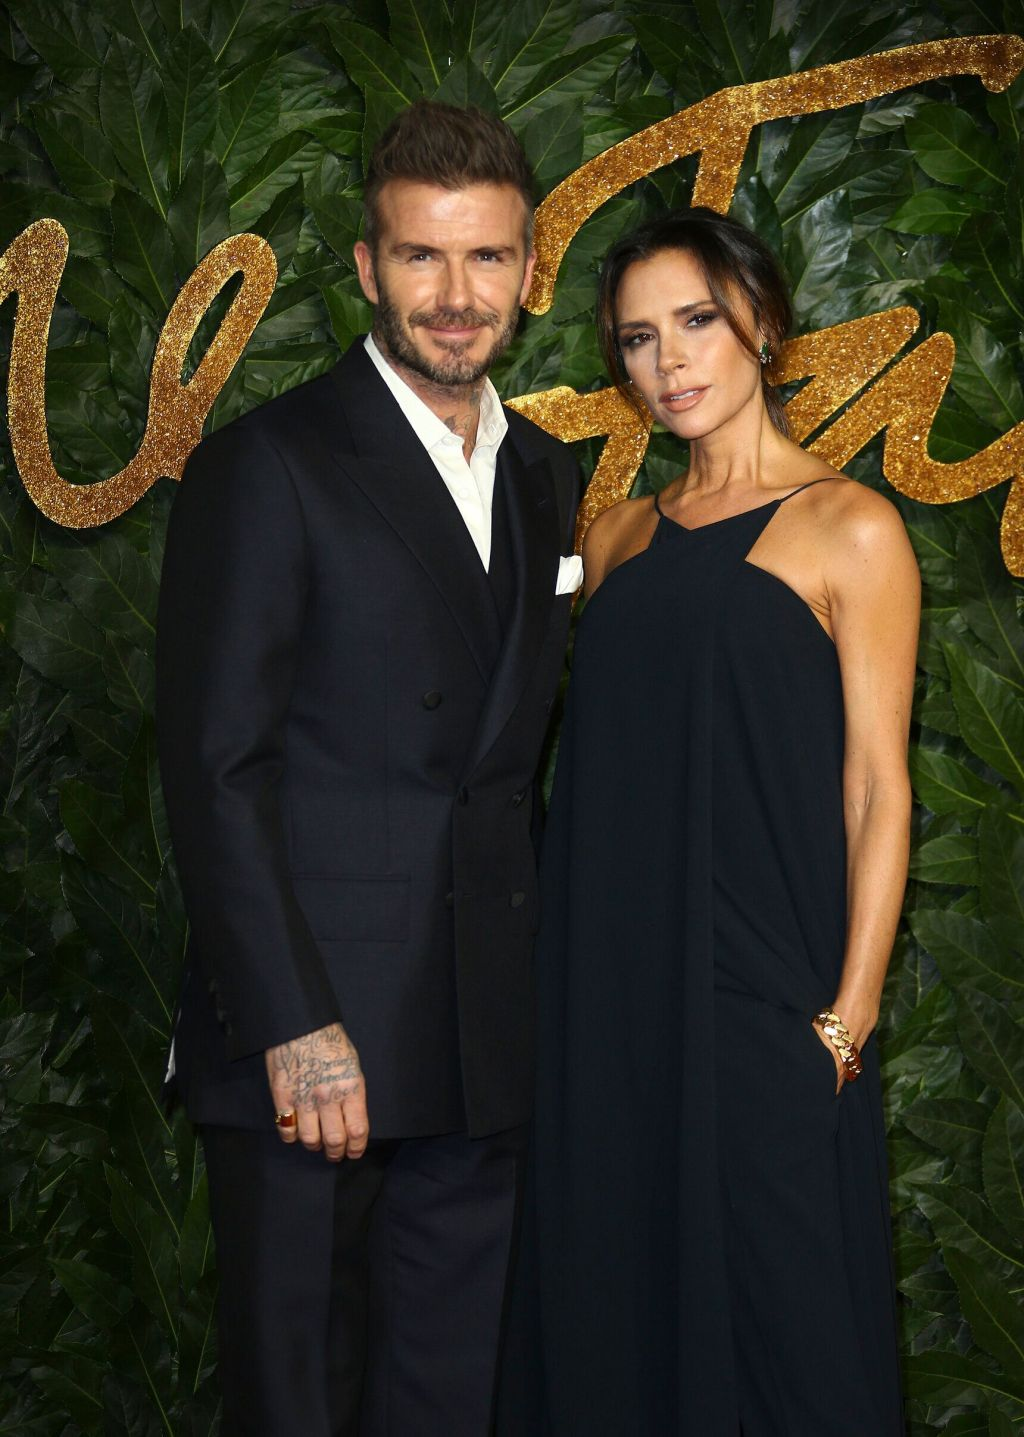 Victoria Beckham Can't Resist Poking Fun At Husband David's Throwback Photo-Shoot On Instagram